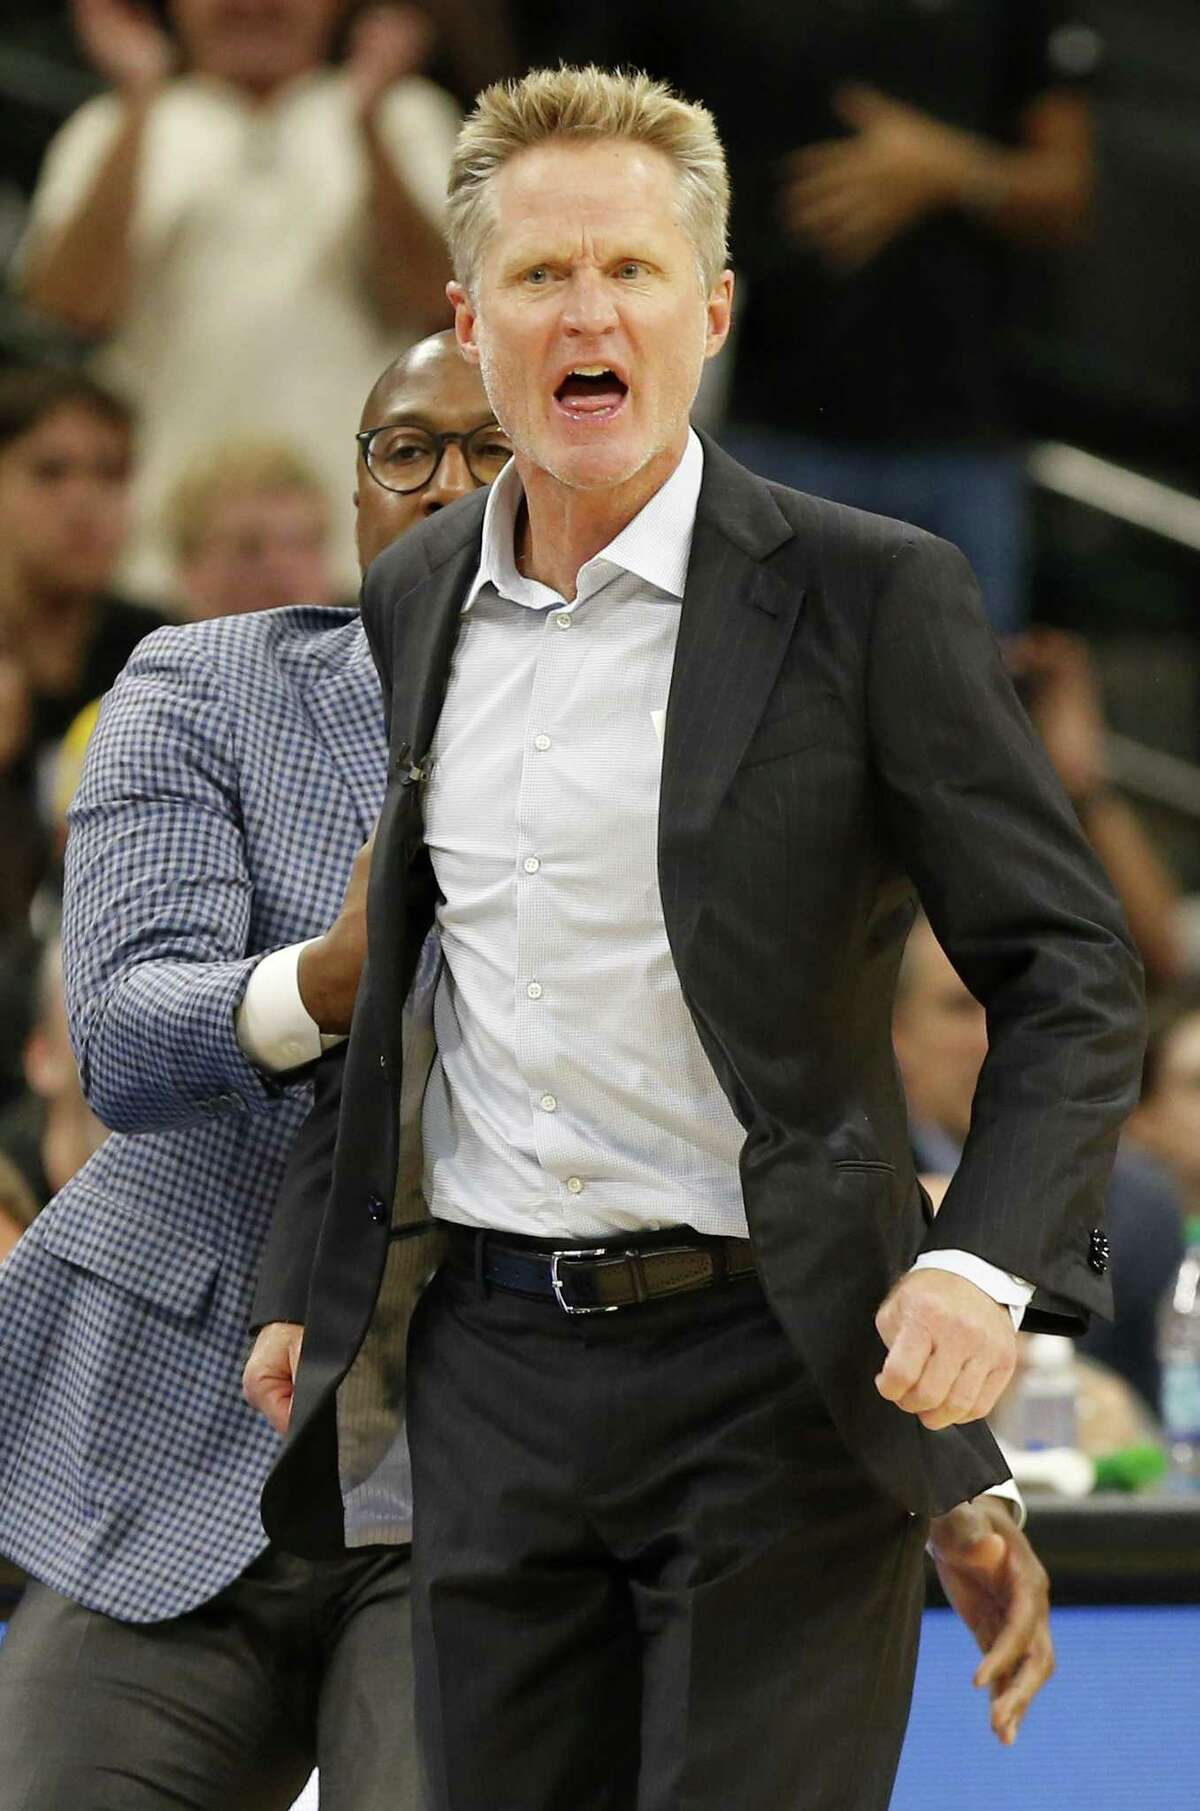 Golden State Warriors assistant coach Mike Brown (left) holds back head coach Steve Kerr as he reacts after a play during first half action against the San Antonio Spurs Thursday Nov. 2, 2017 at the AT&T Center. Kerr was given a technical.